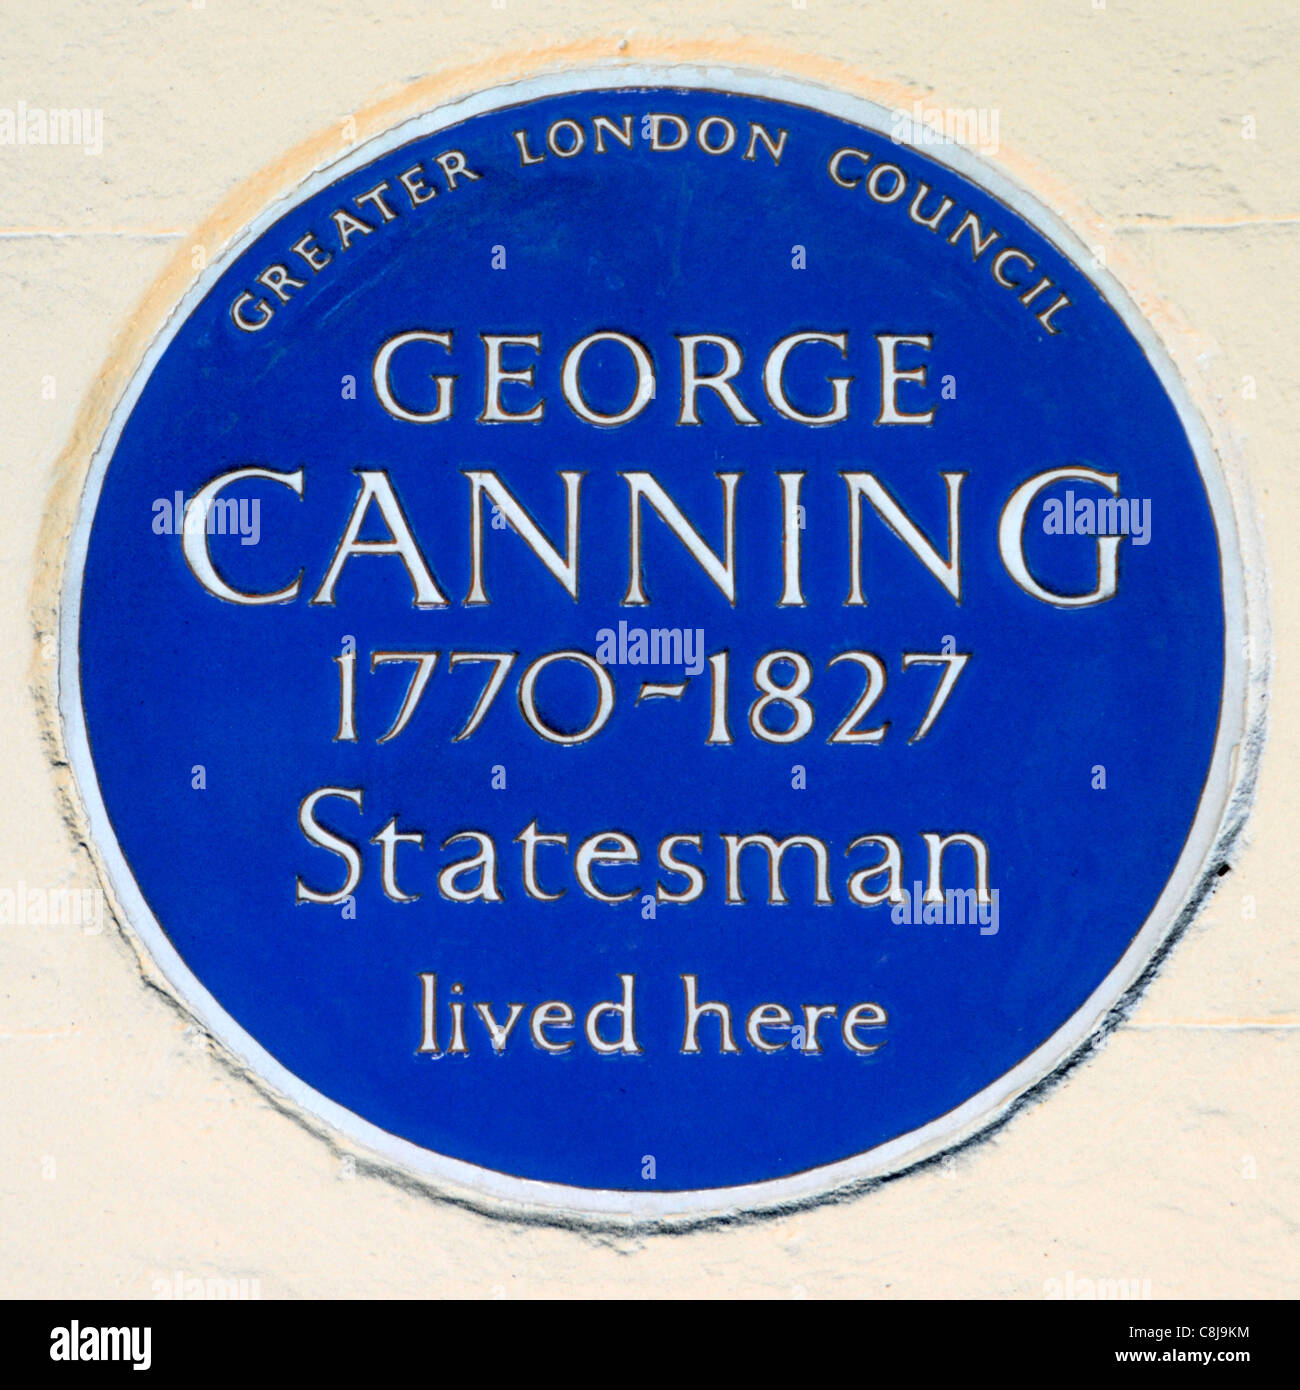 Greater London Council blue plaque tribute to George Canning British statesman and Tory politician lived here Mayfair - Stock Image